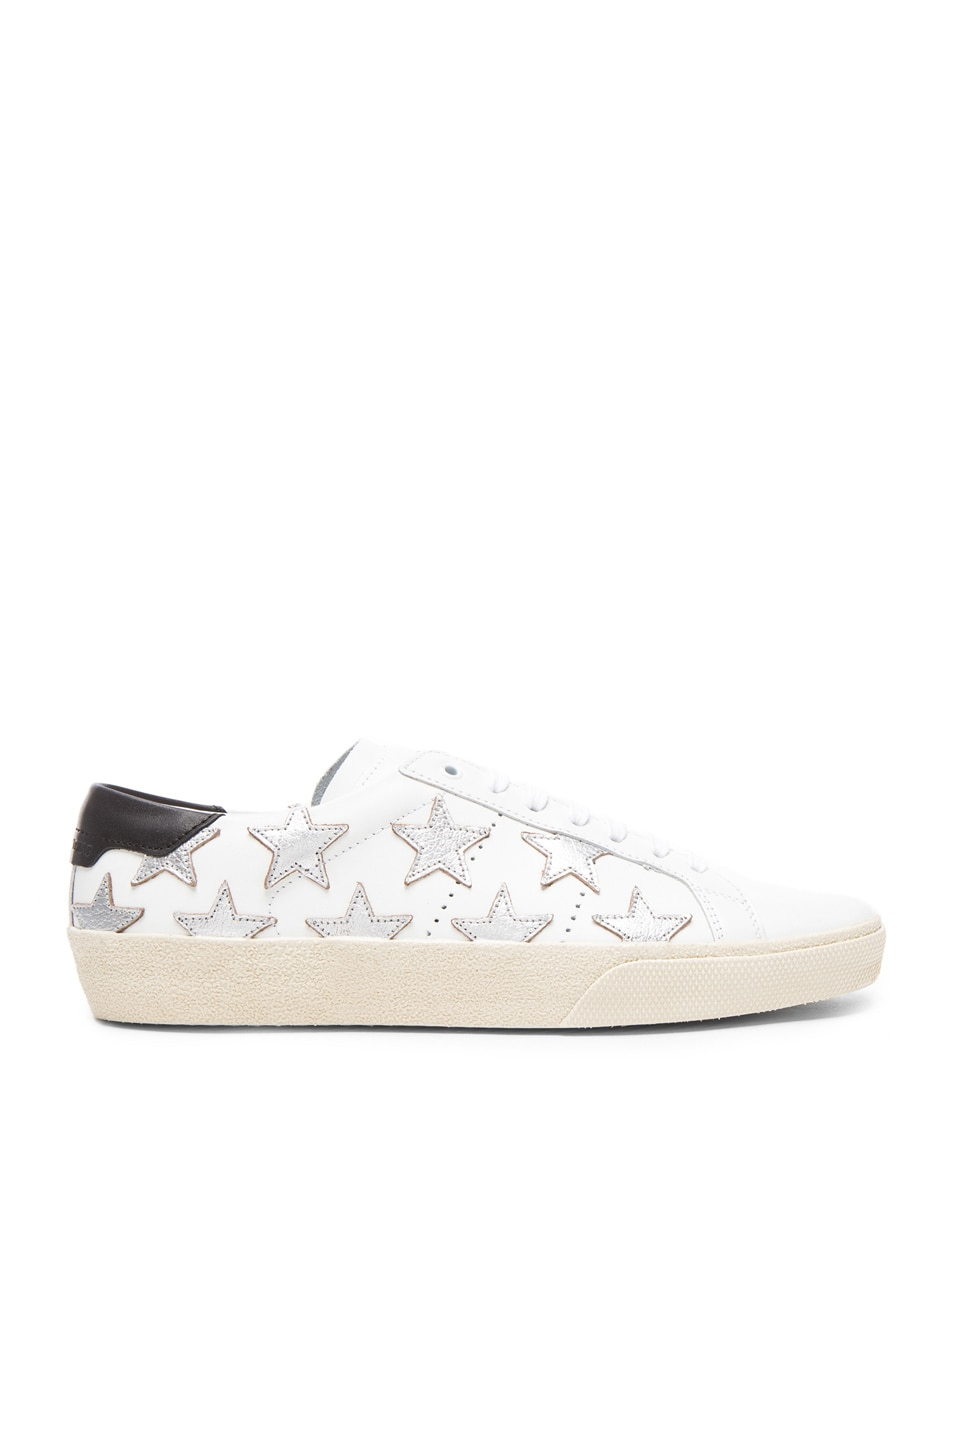 Image 1 of Saint Laurent Court Classic Star Leather Sneakers in Black & White